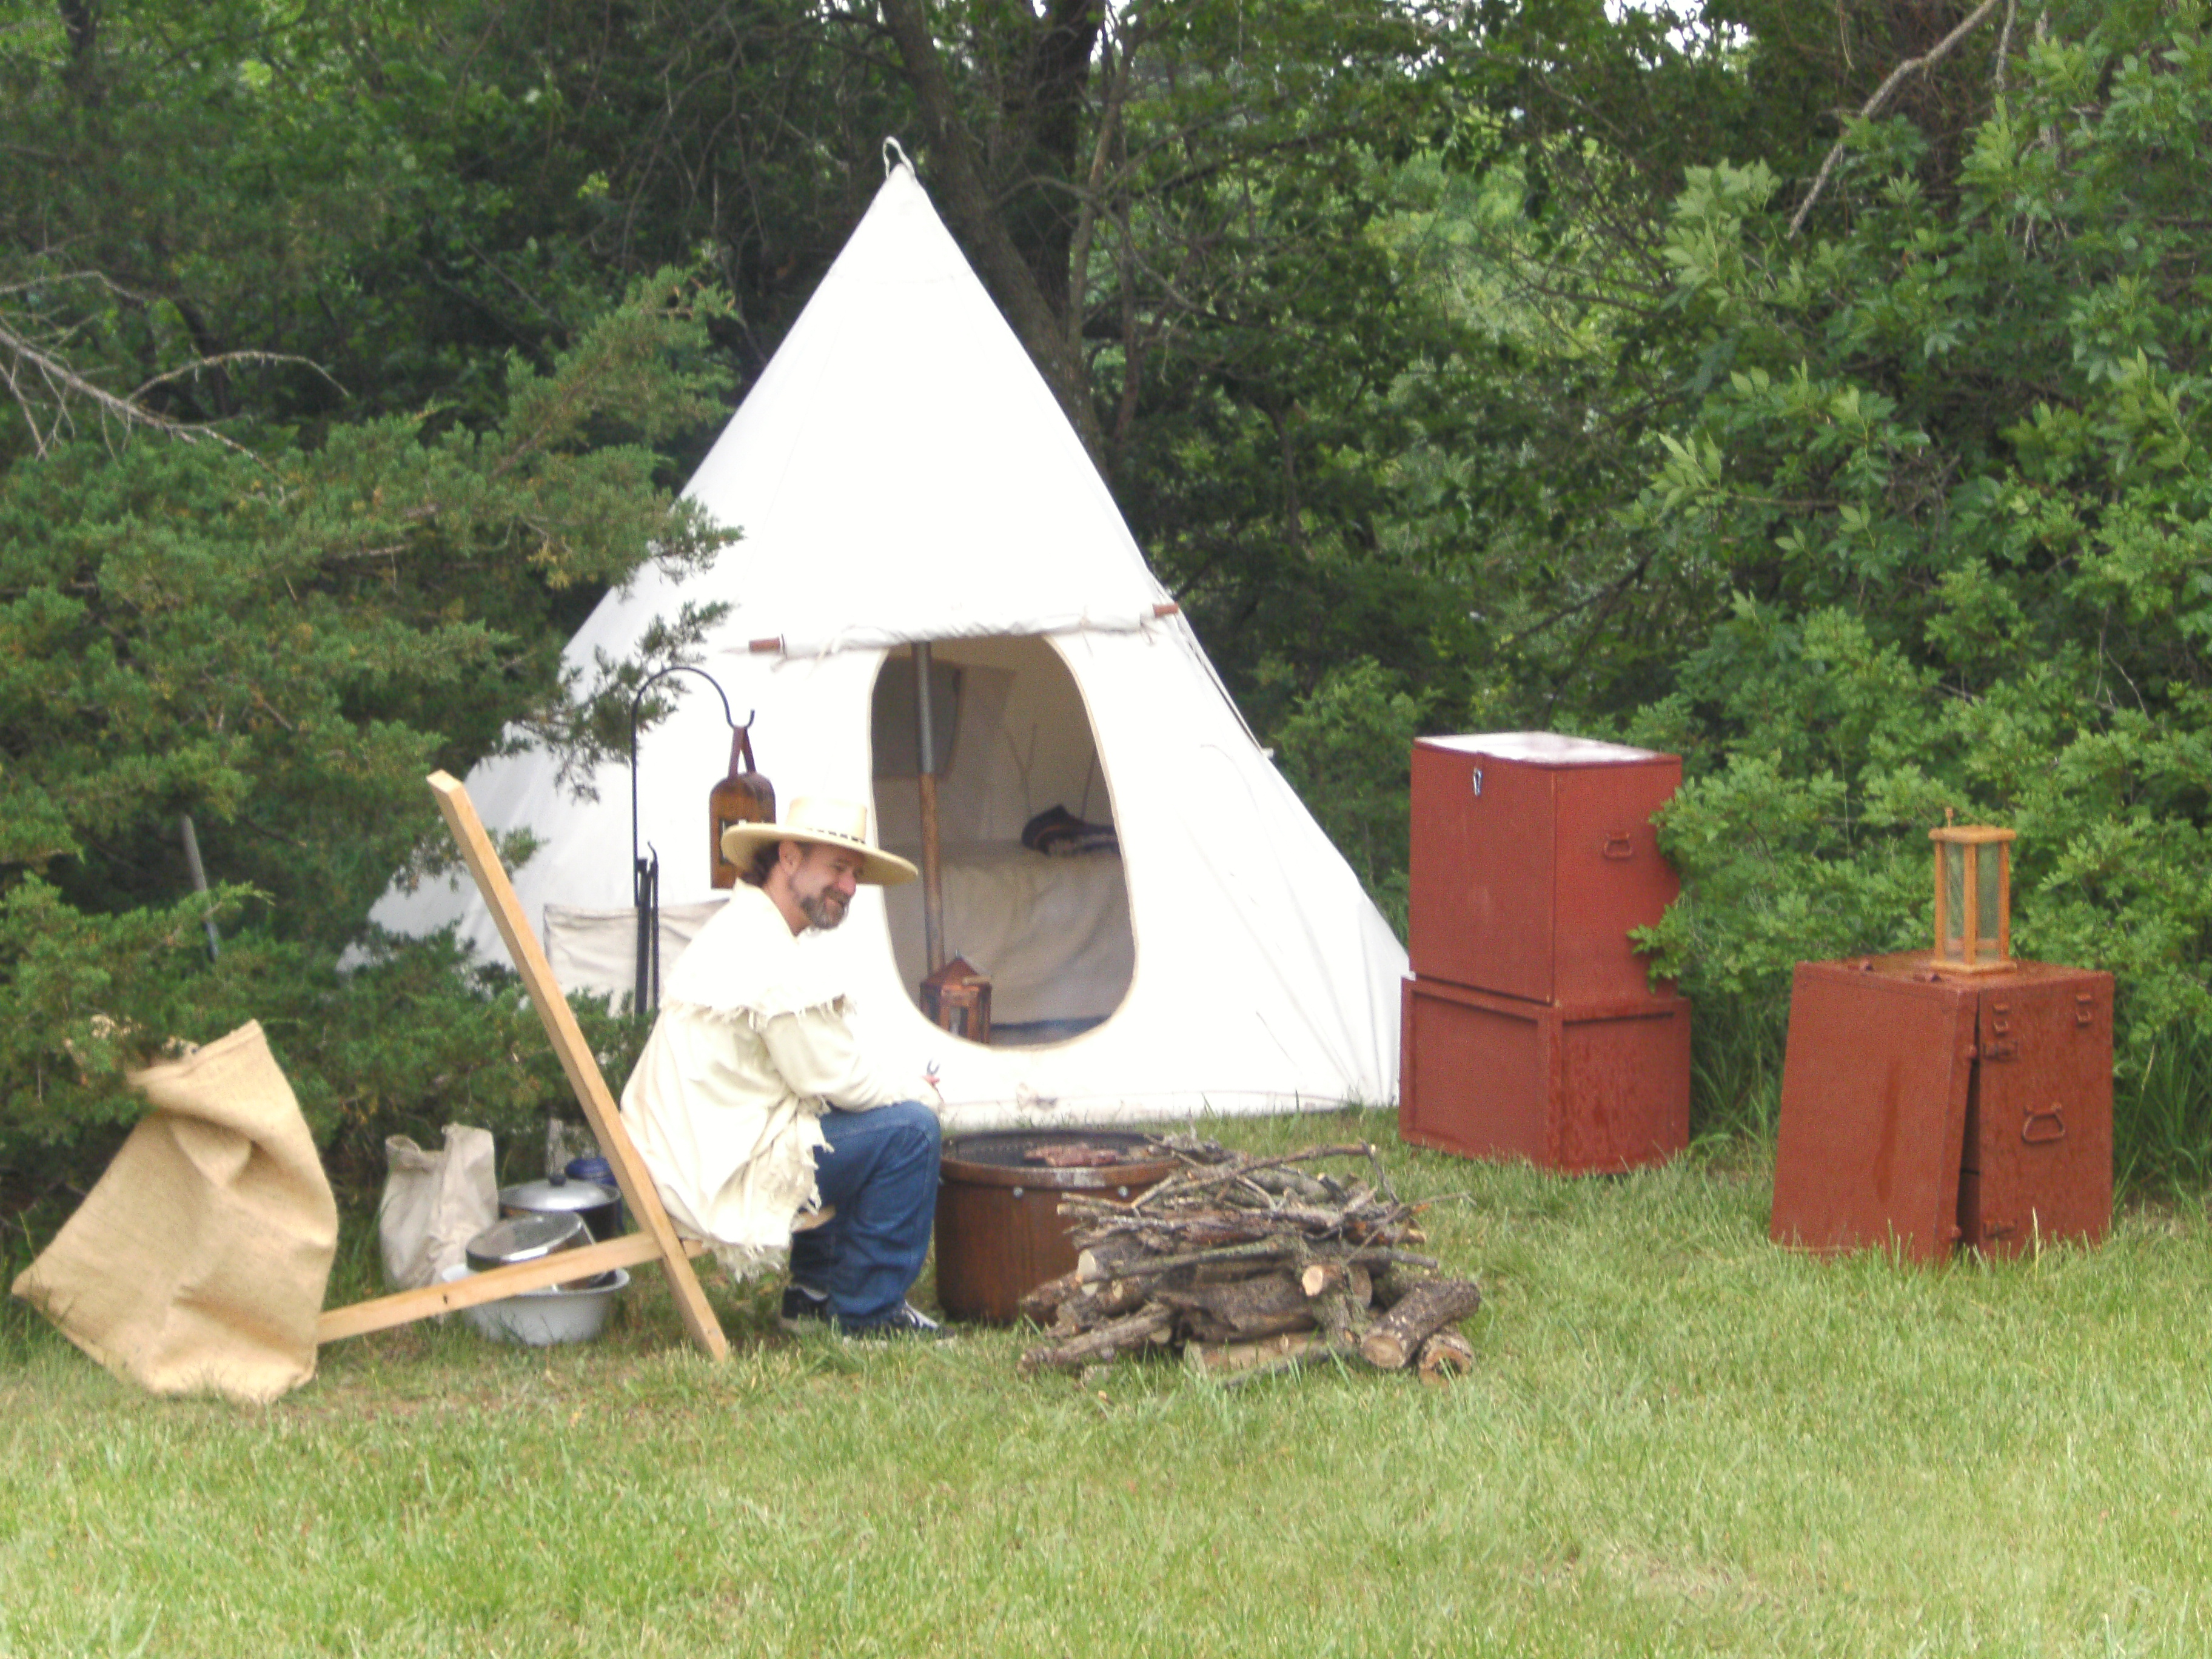 Male reenactor as a trader, sitting in front of tipi